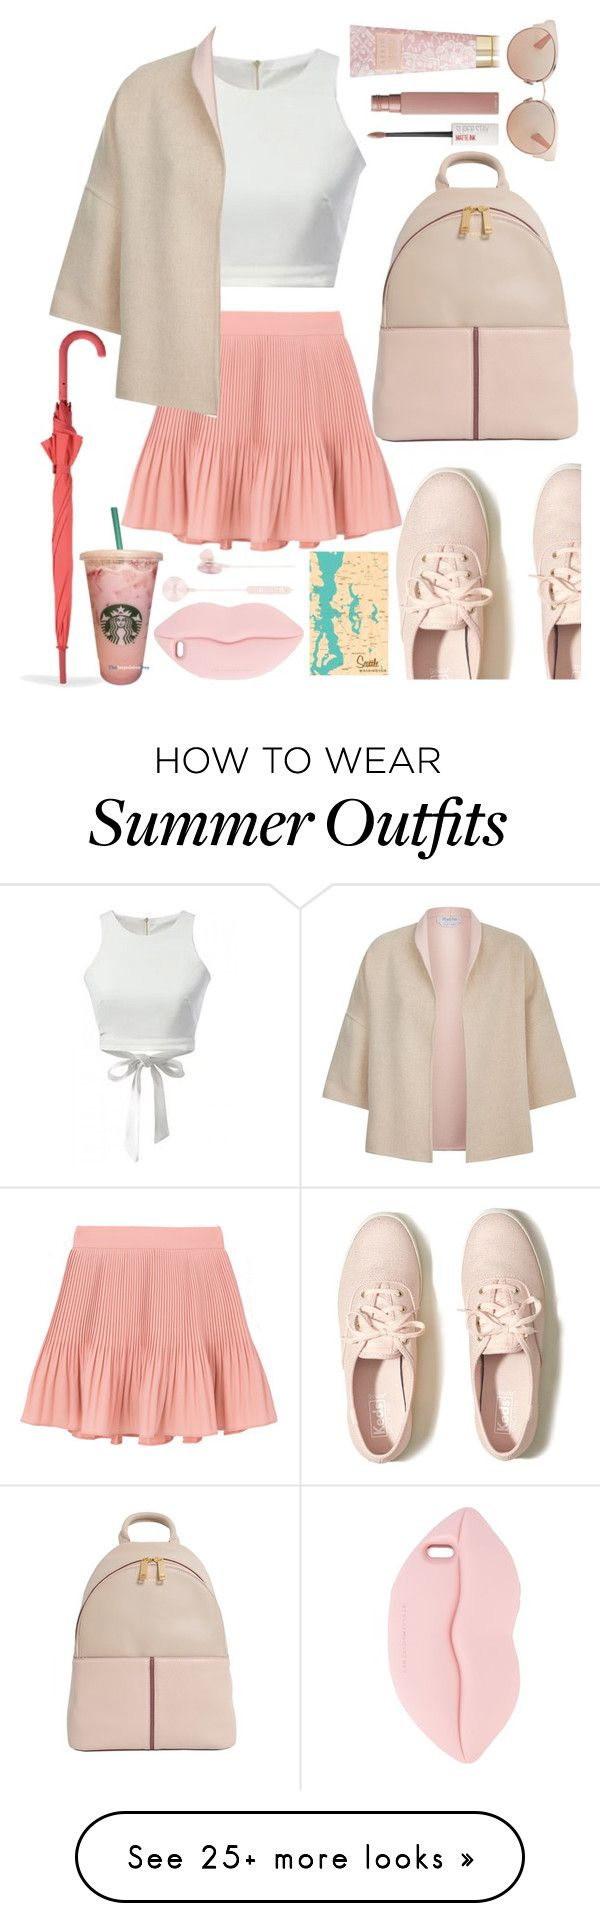 """Strolling Around Seattle"" by ayiarundhati on Polyvore featuring Hollister Co., MaxMara, LEXON, HUGO, Christian Dior, STELLA McCARTNEY, i.am+, Maybelline and AERIN"